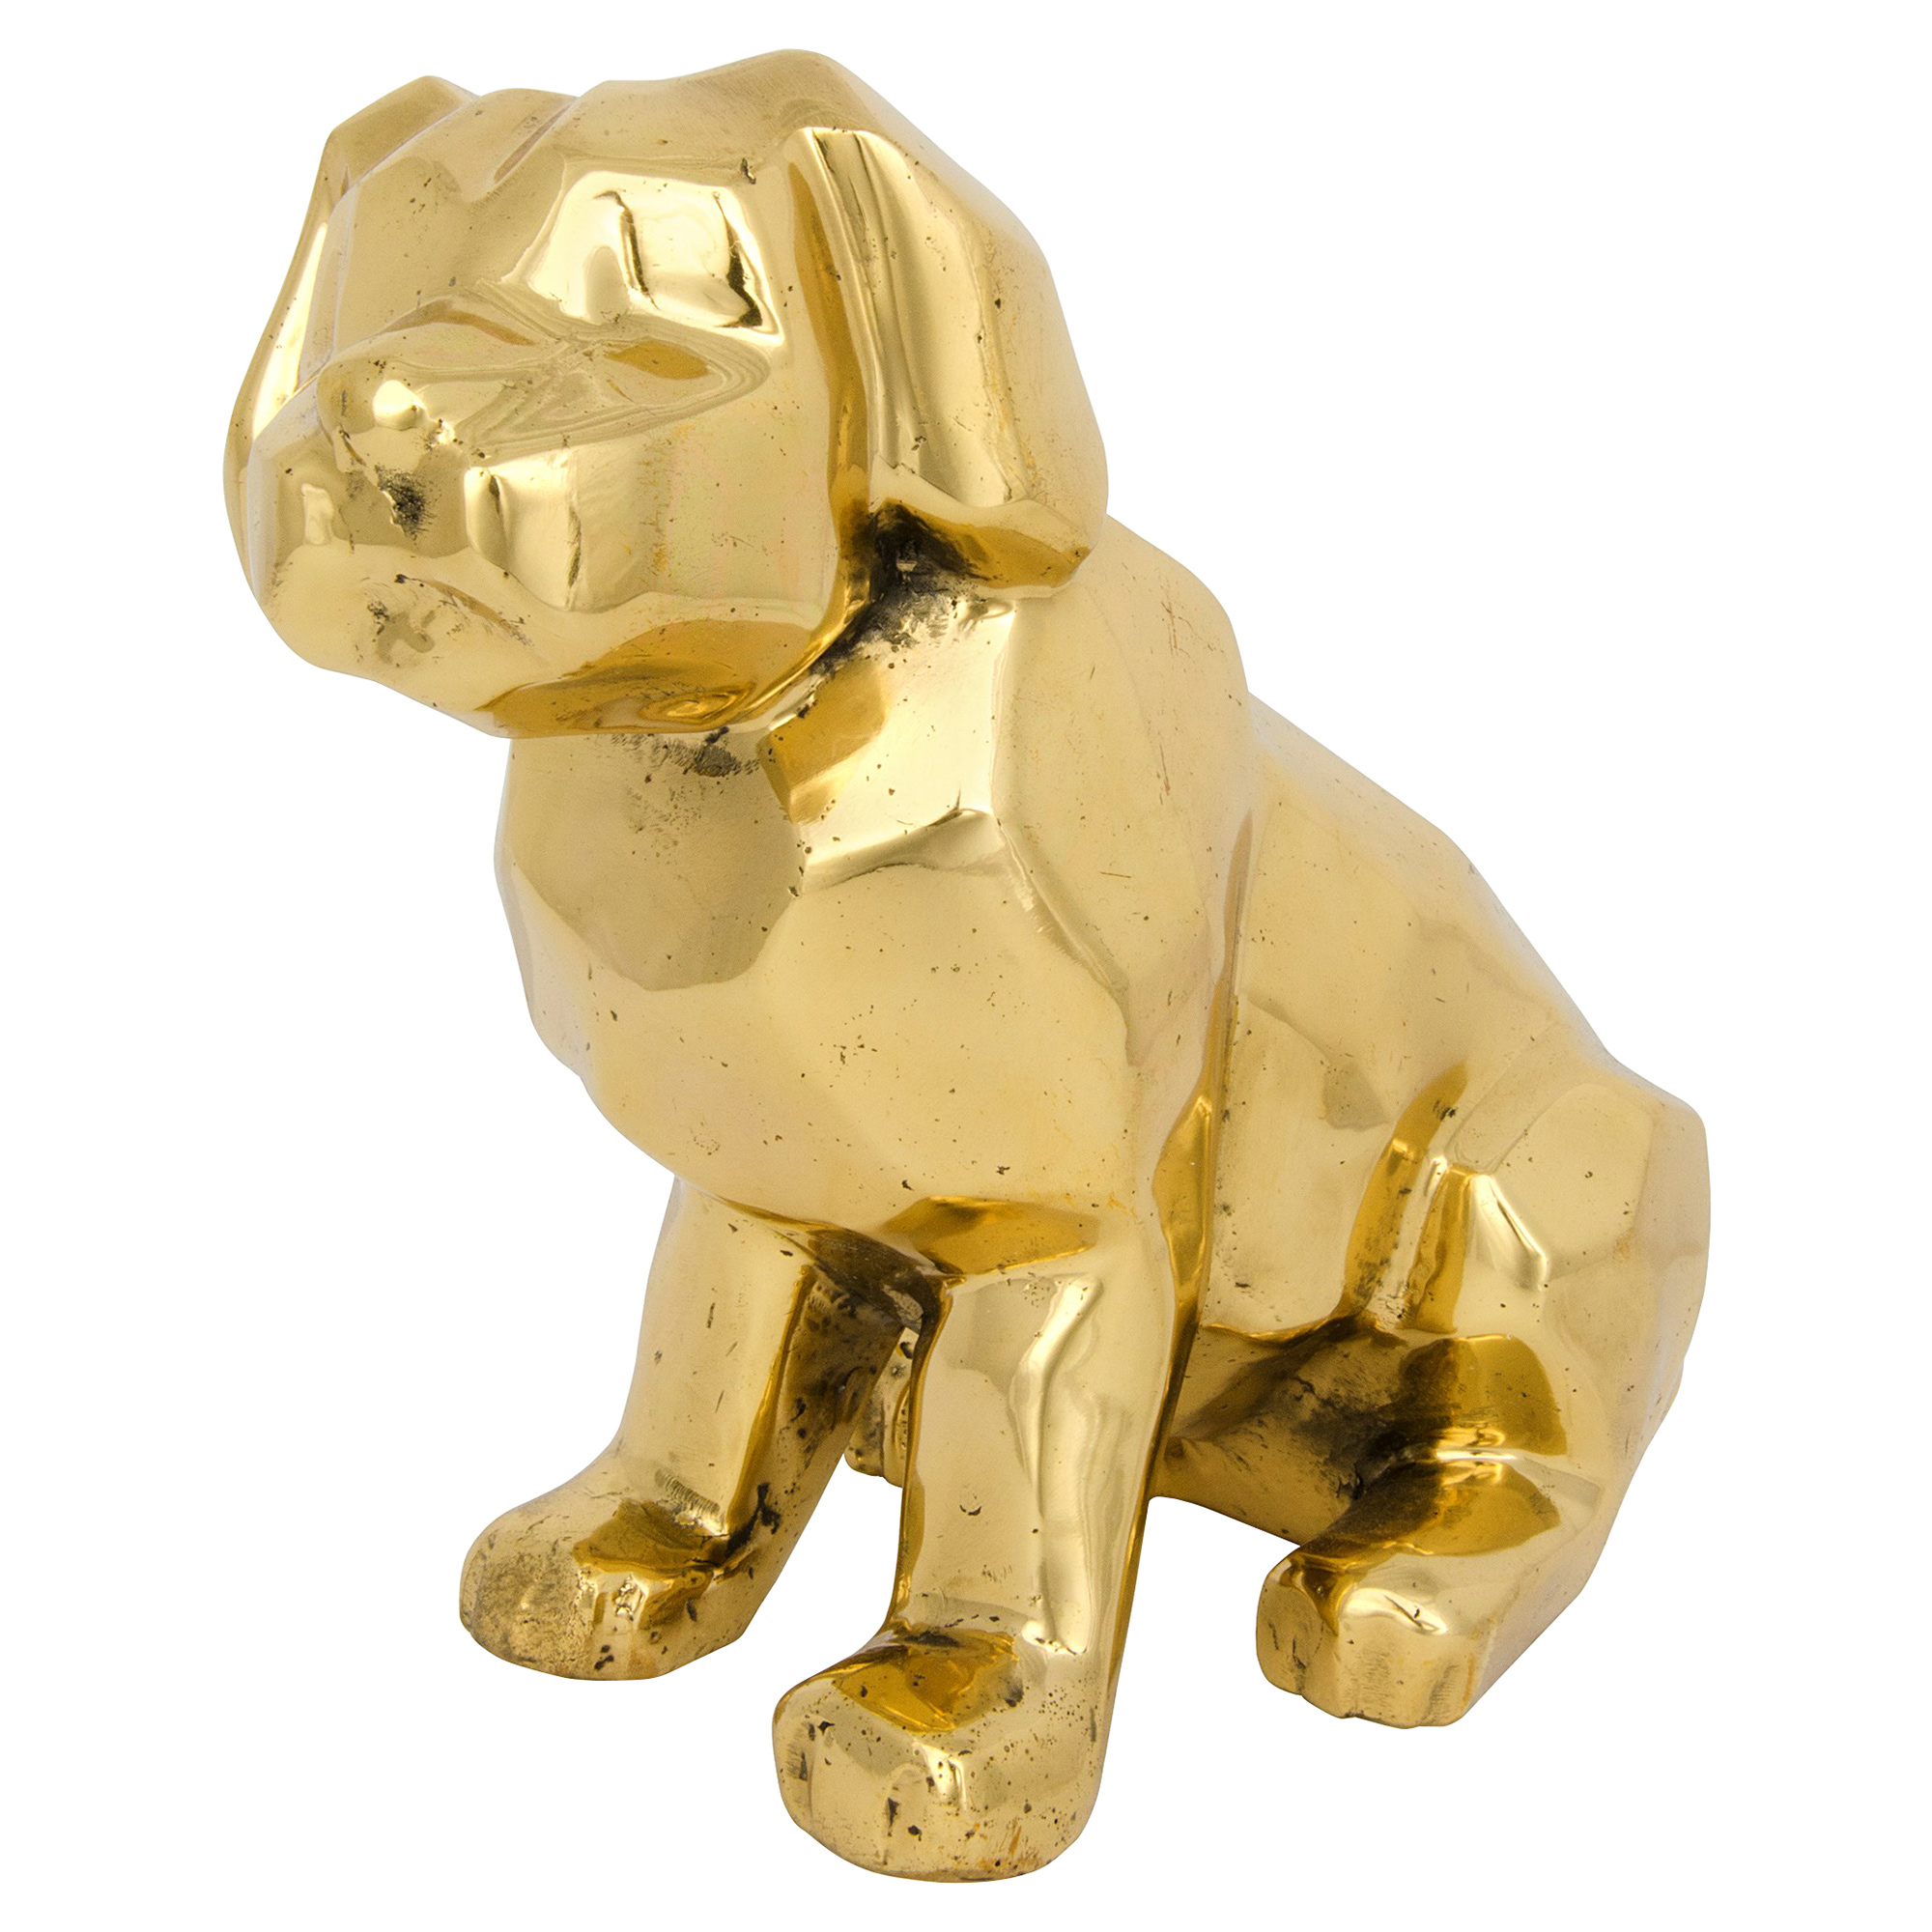 Puppy Dog Antique Brass Sculpture